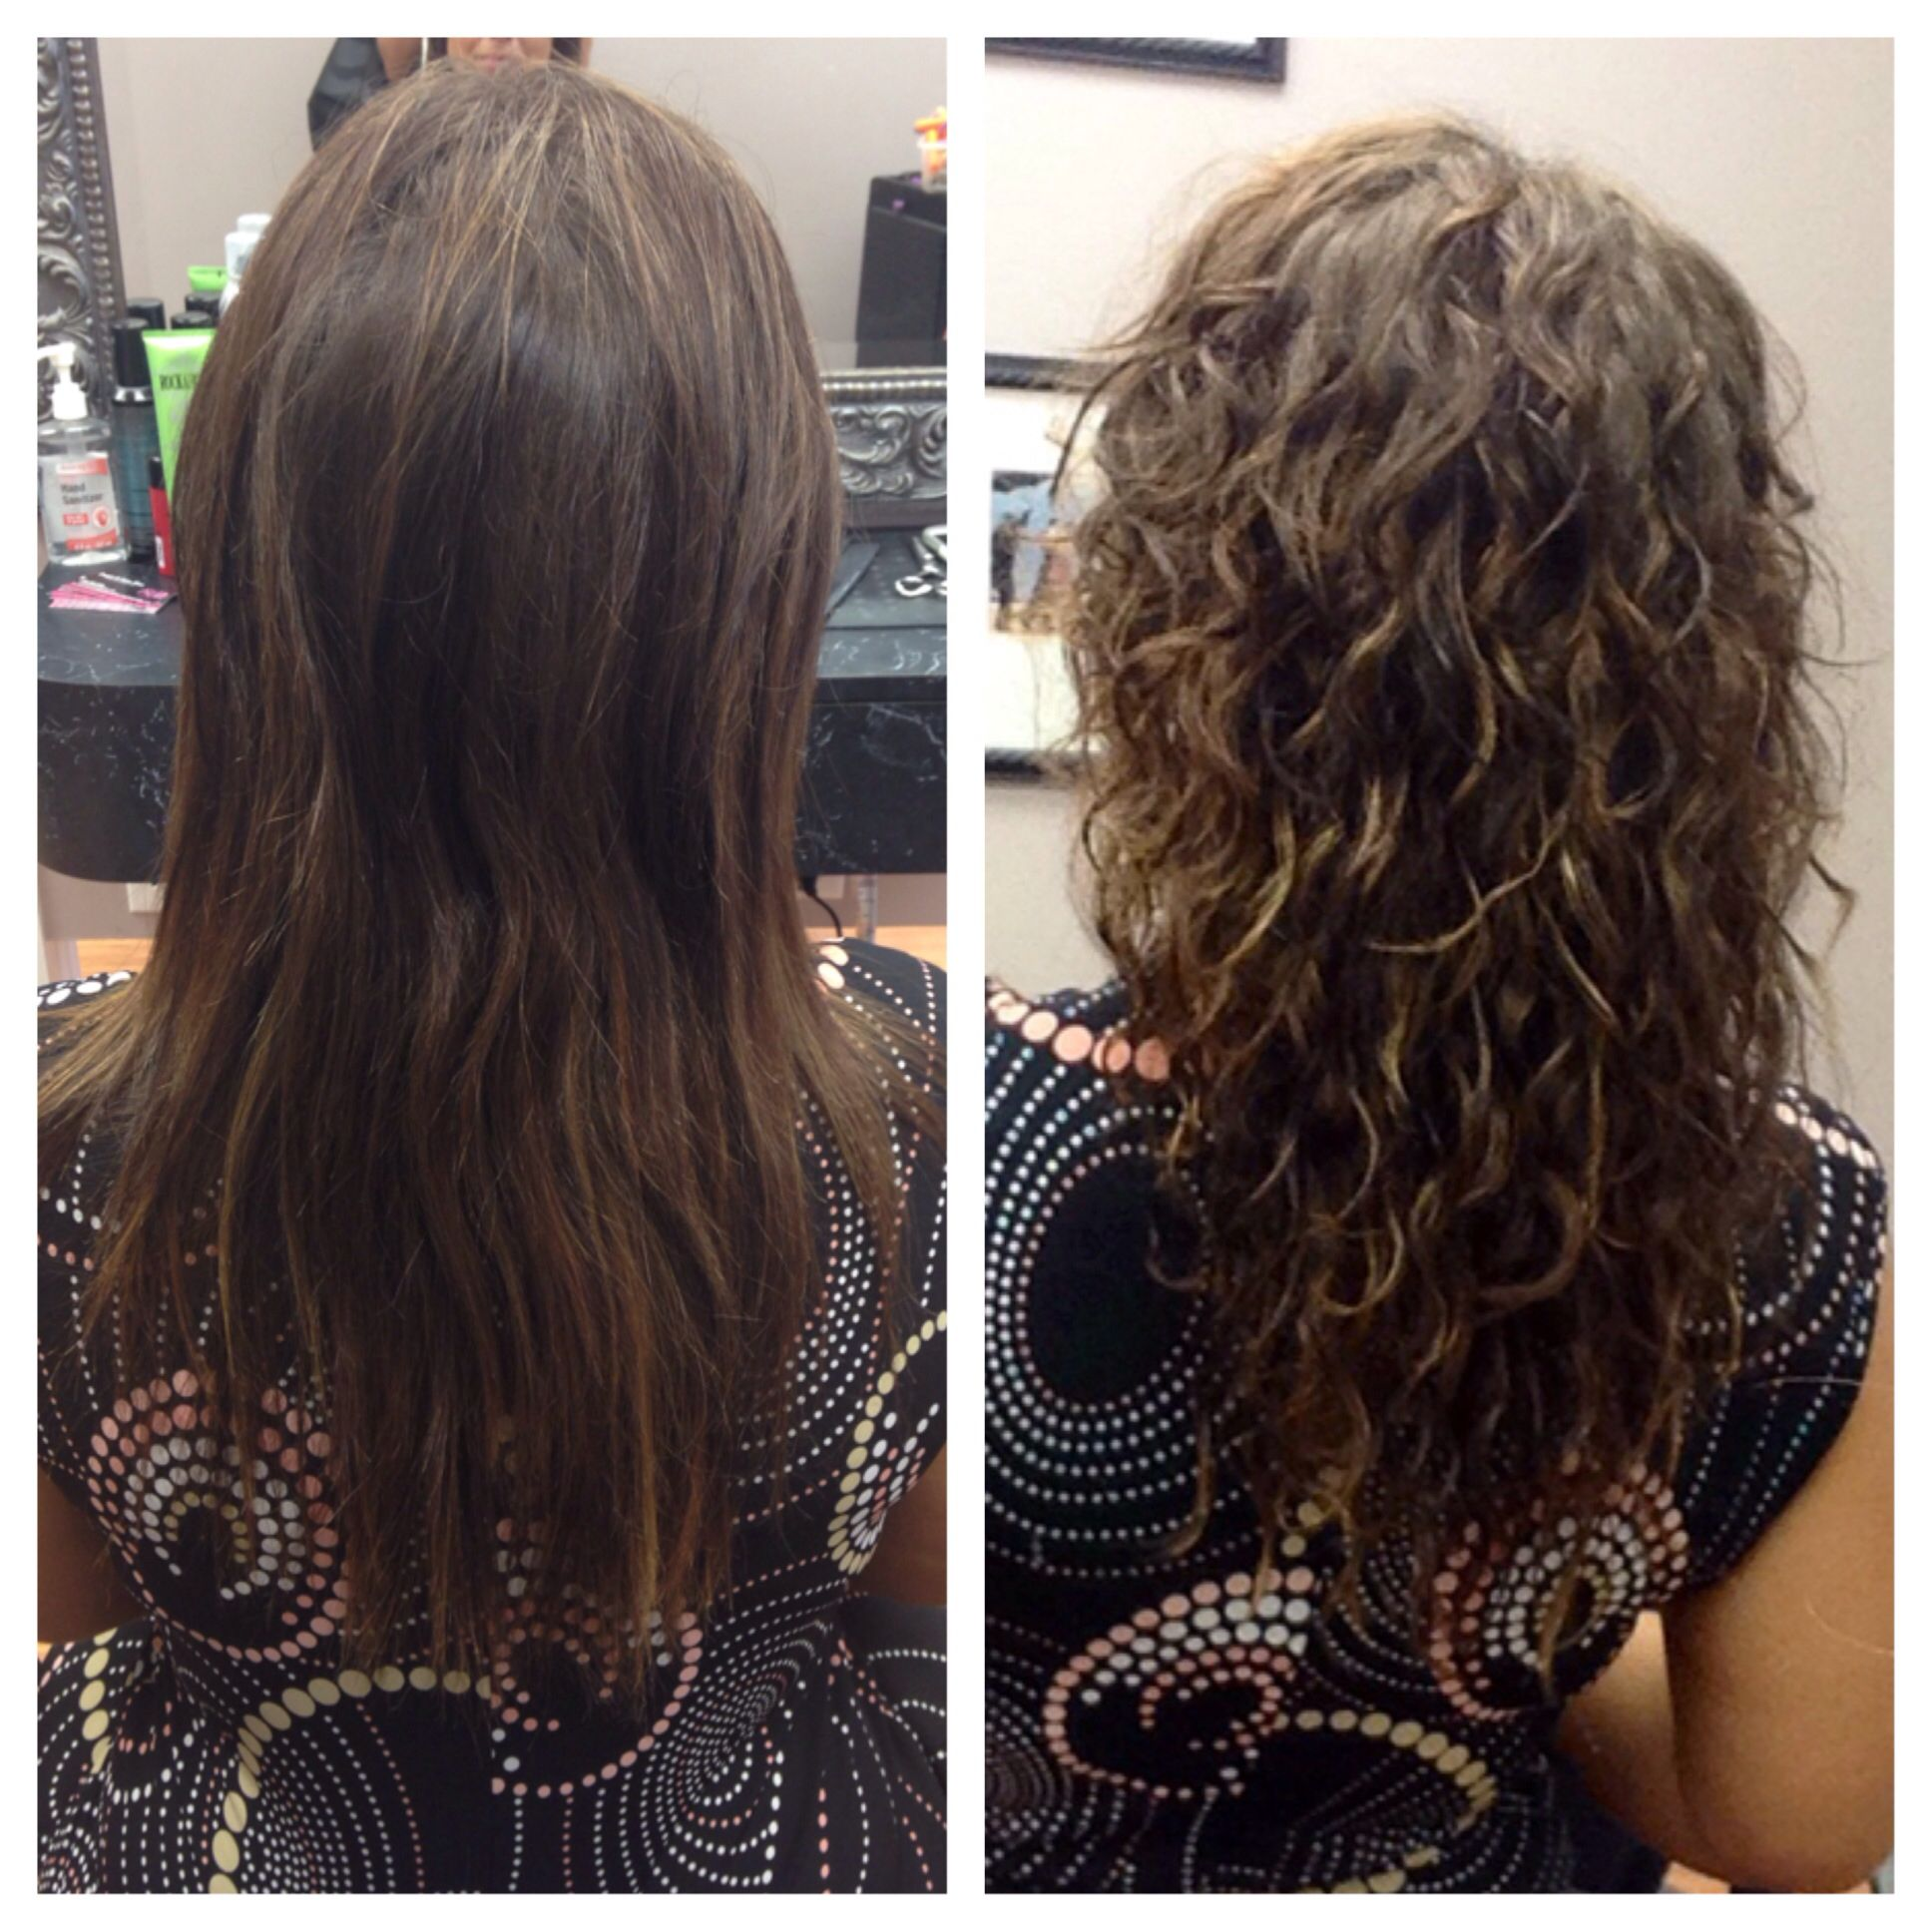 Body Wave Perm Before And After Makeup Madness Pinterest Hair